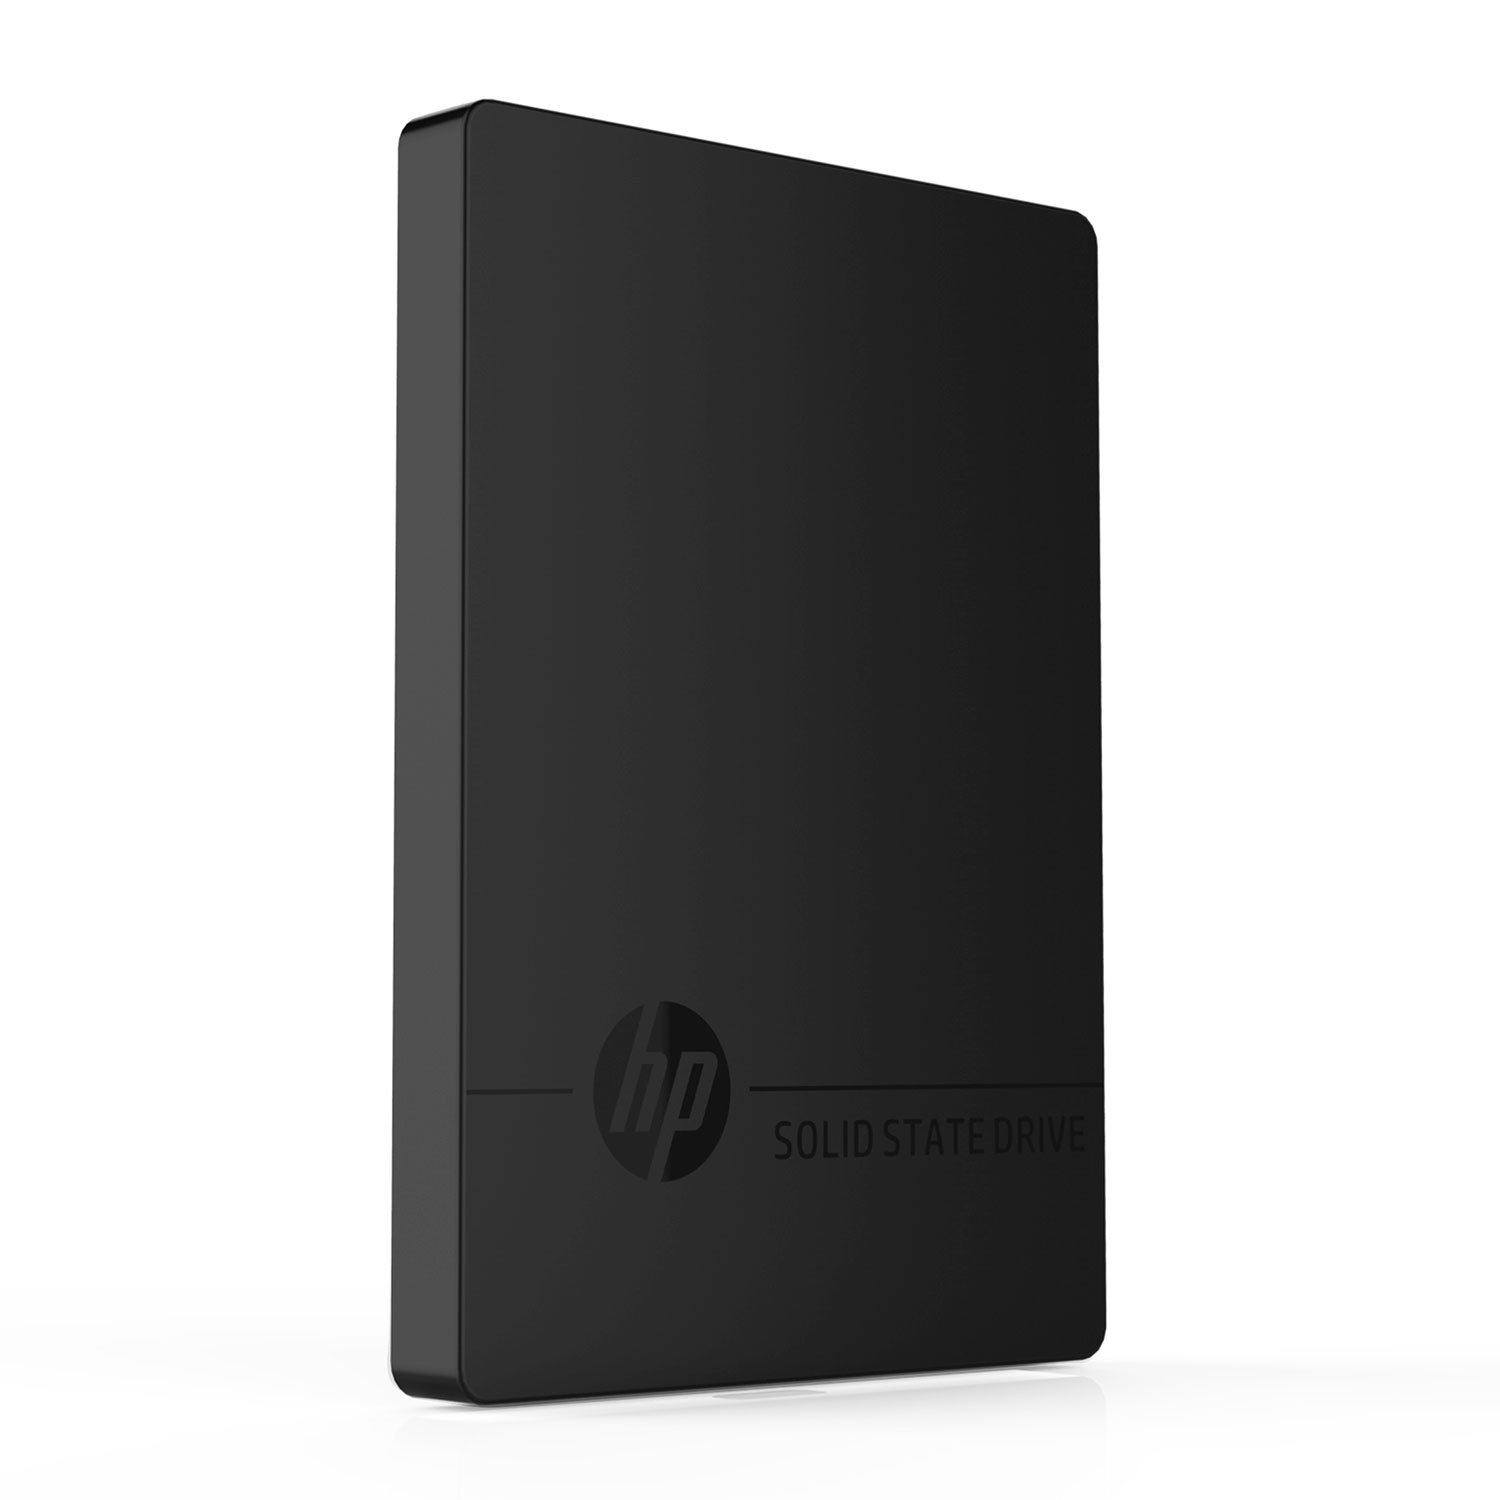 HP P600 500GB Portable USB 3.1 External SSD 3XJ07AA#ABC by HP (Image #5)